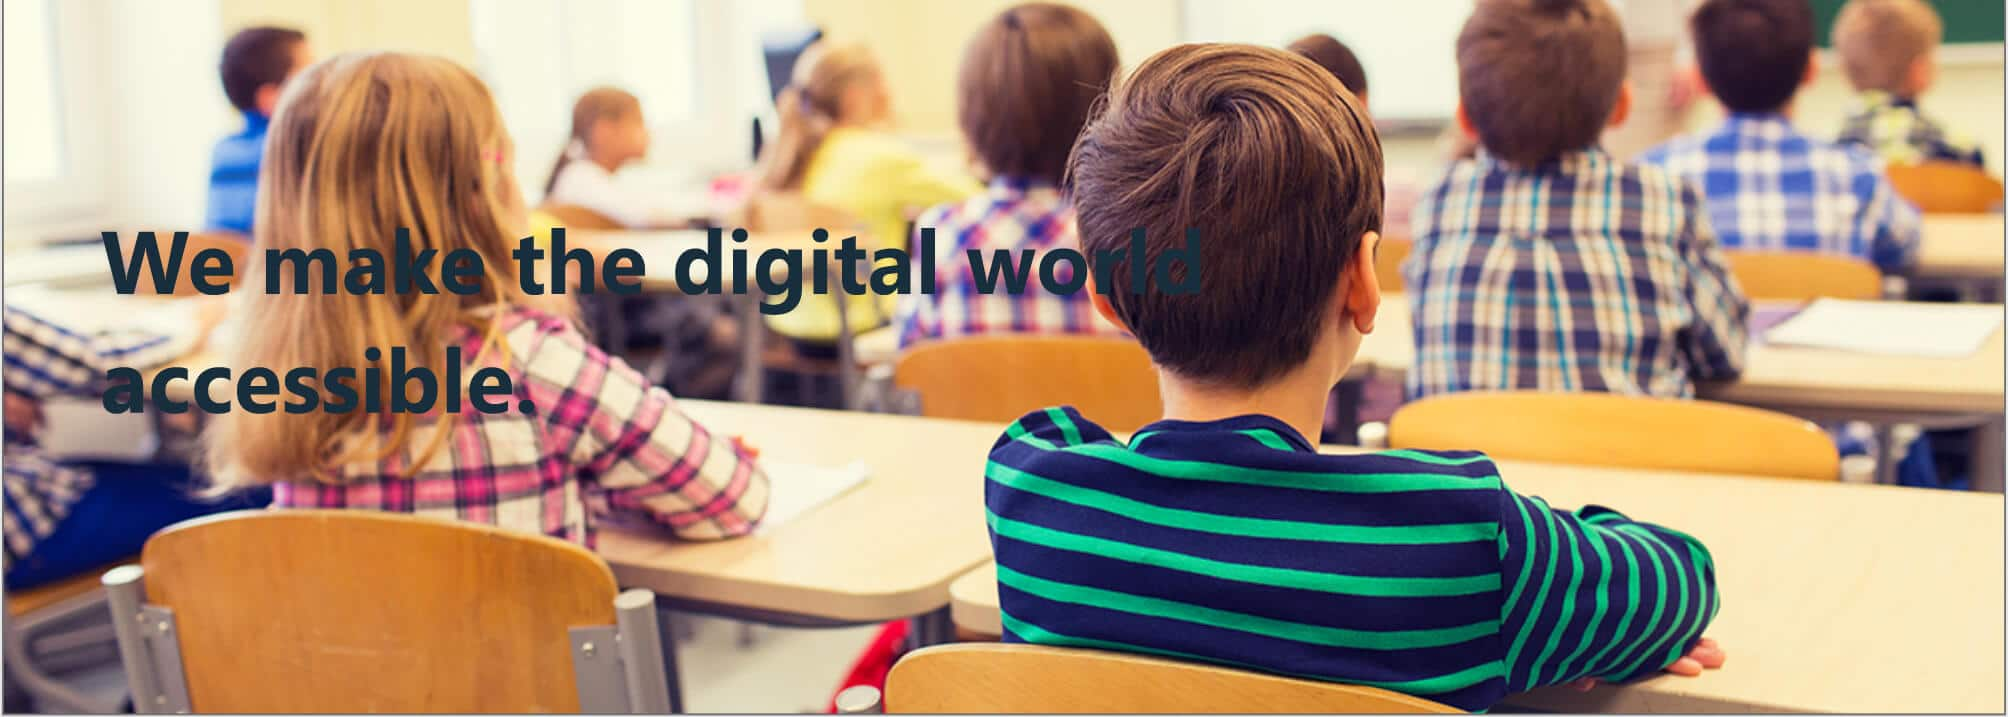 Kids in classroom with text that is hard to read